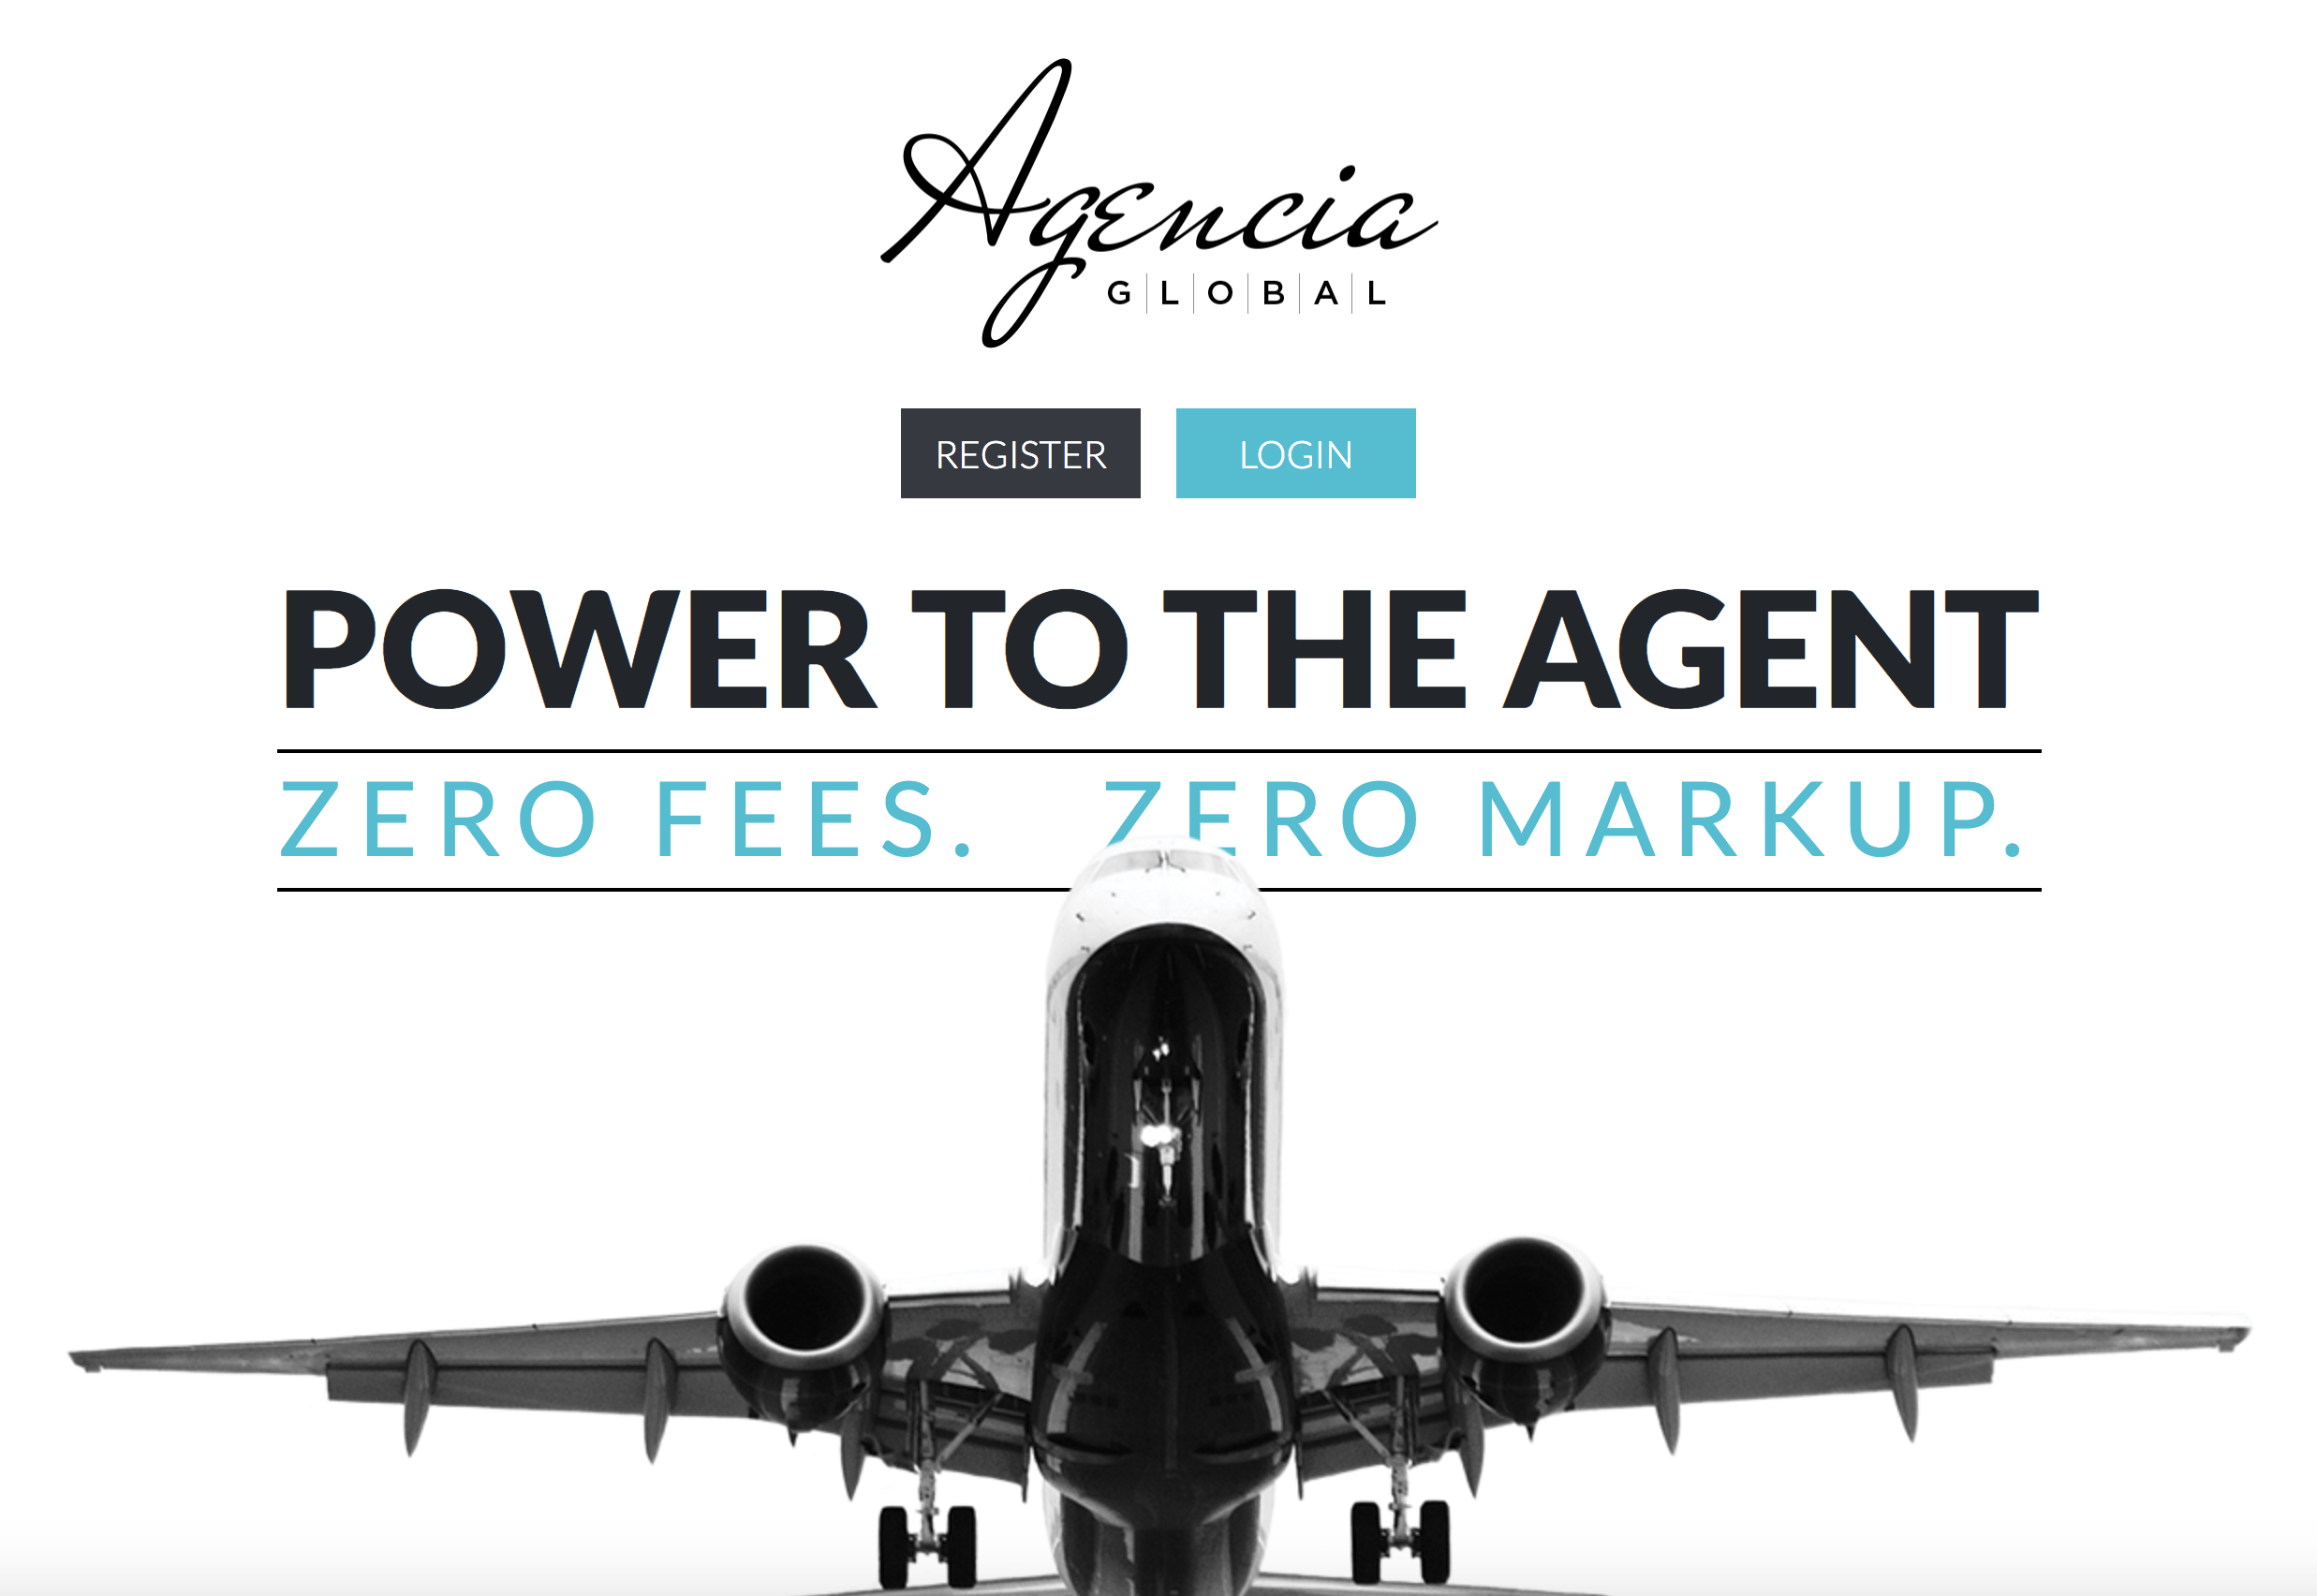 Agencia Global ready for take-off